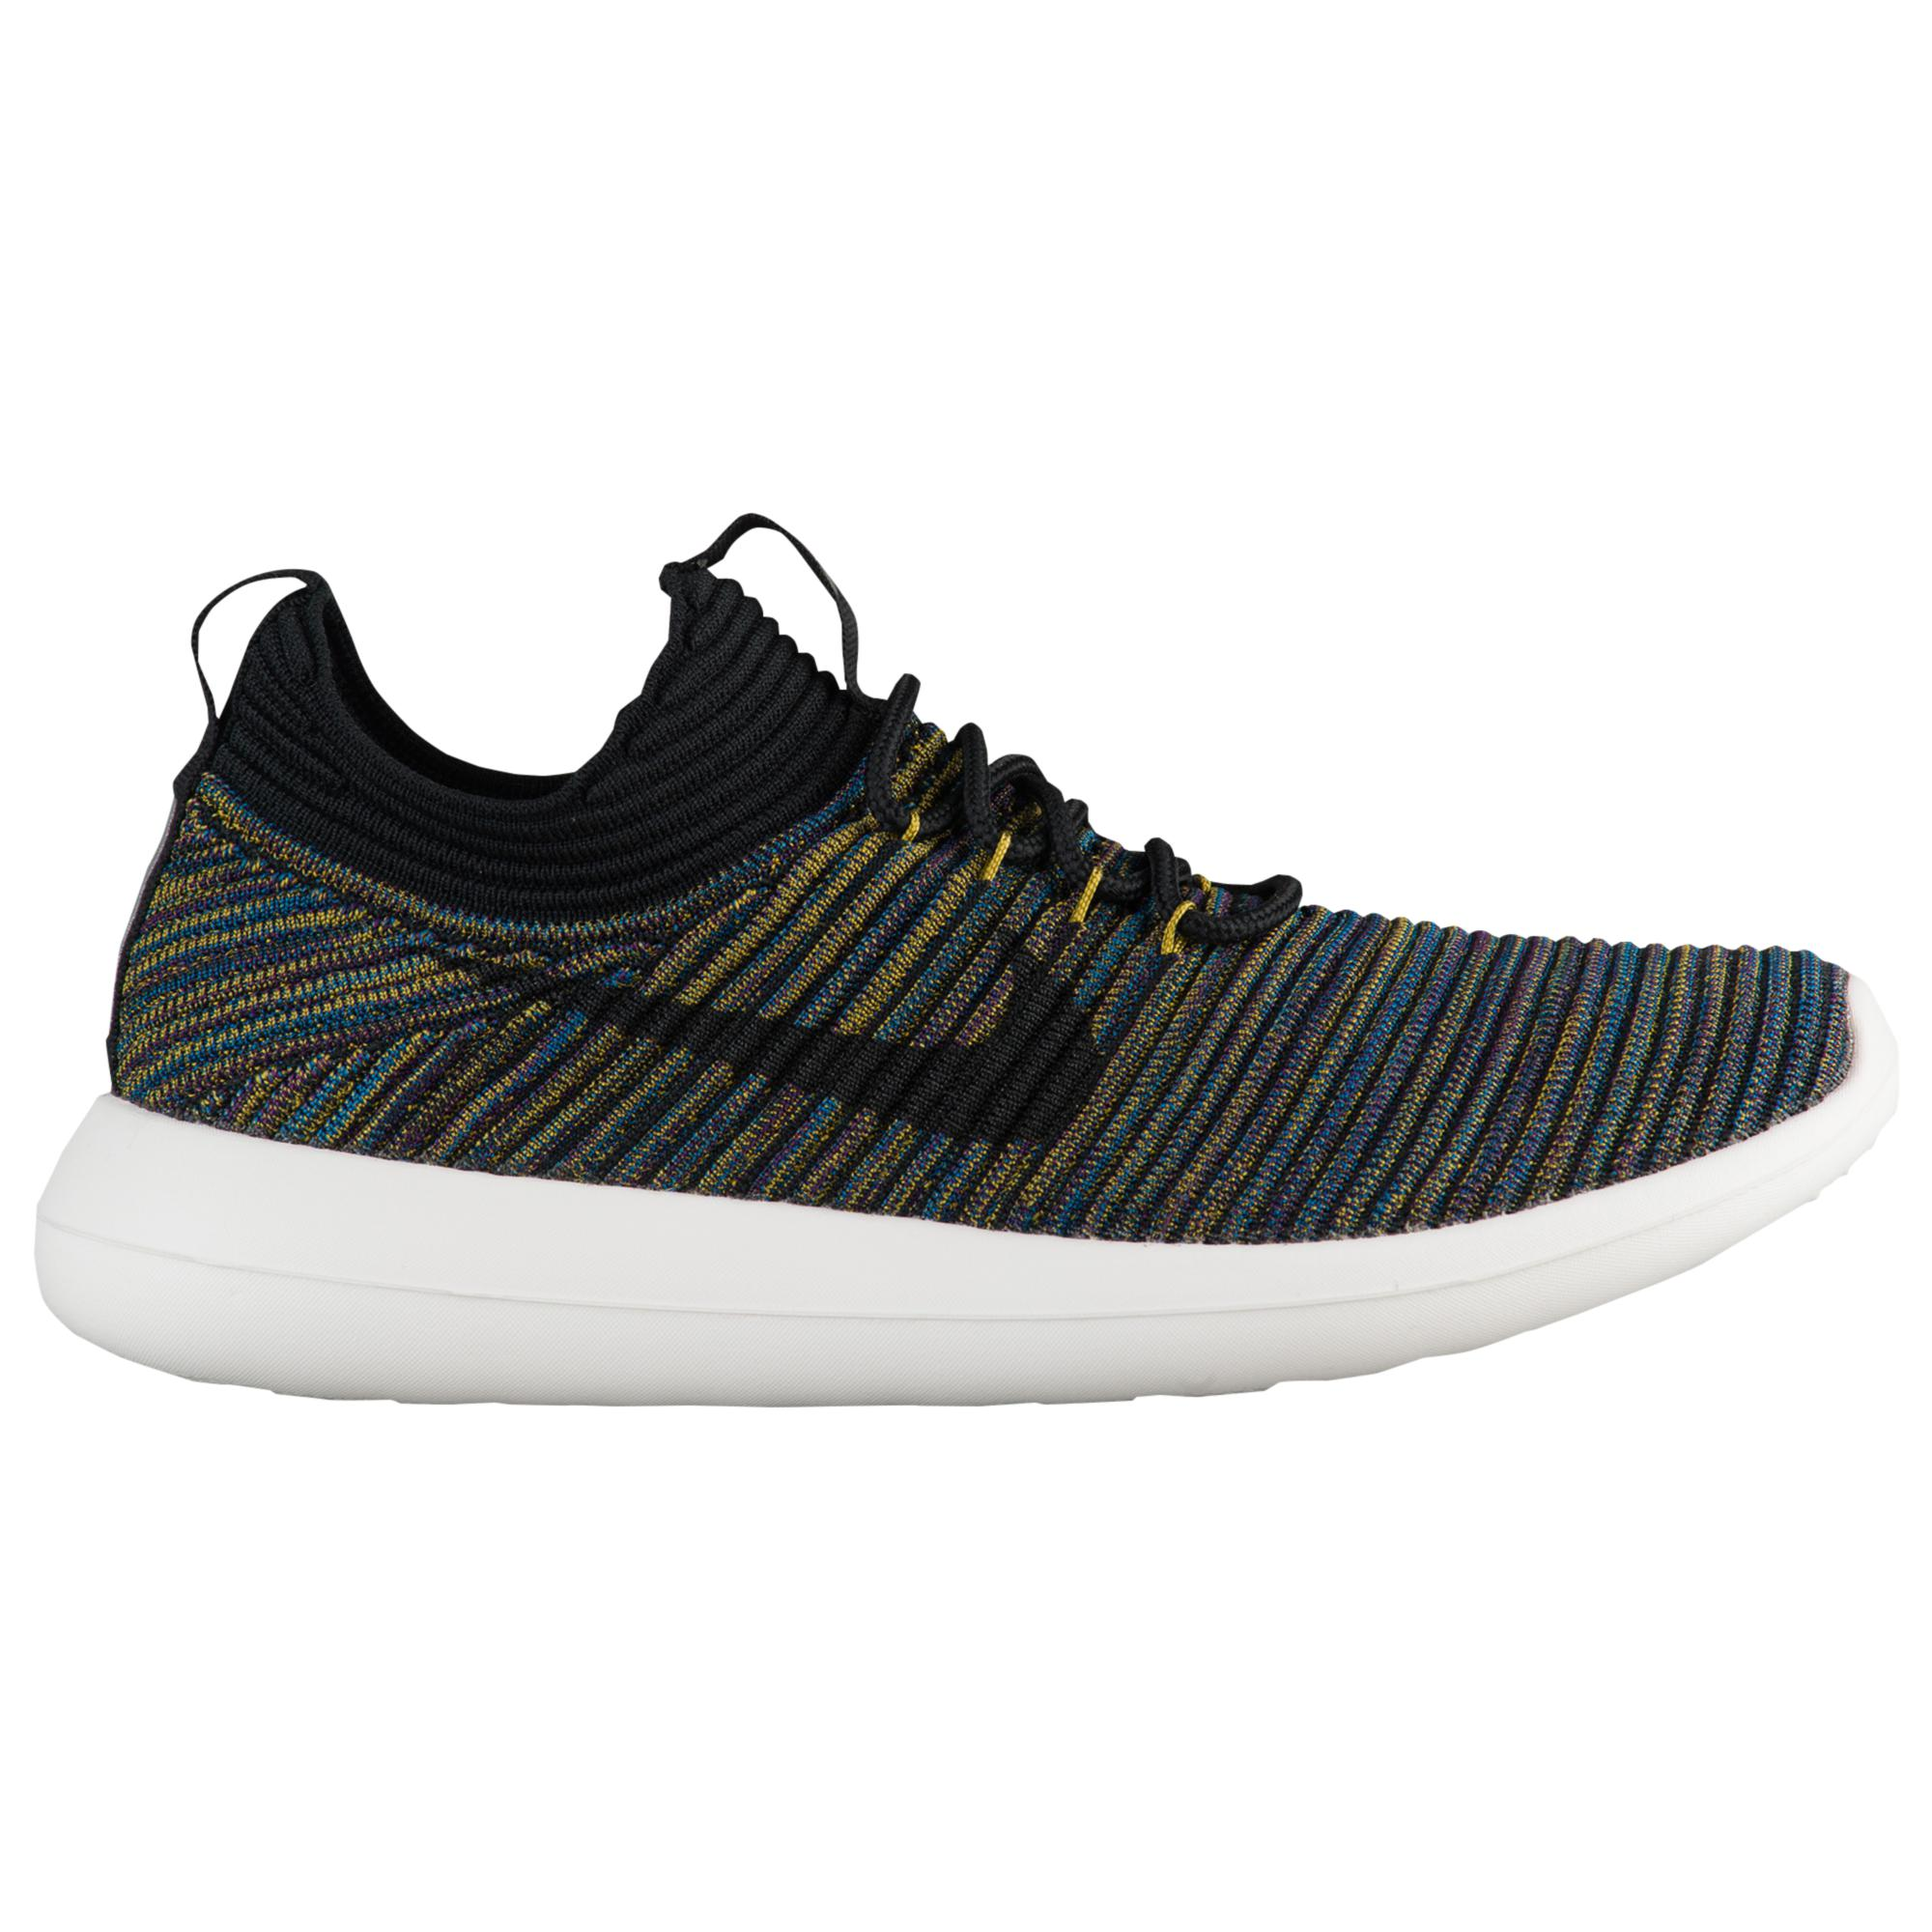 3e4246f89a42 Lyst - Nike Roshe Two Flyknit 2 in Black